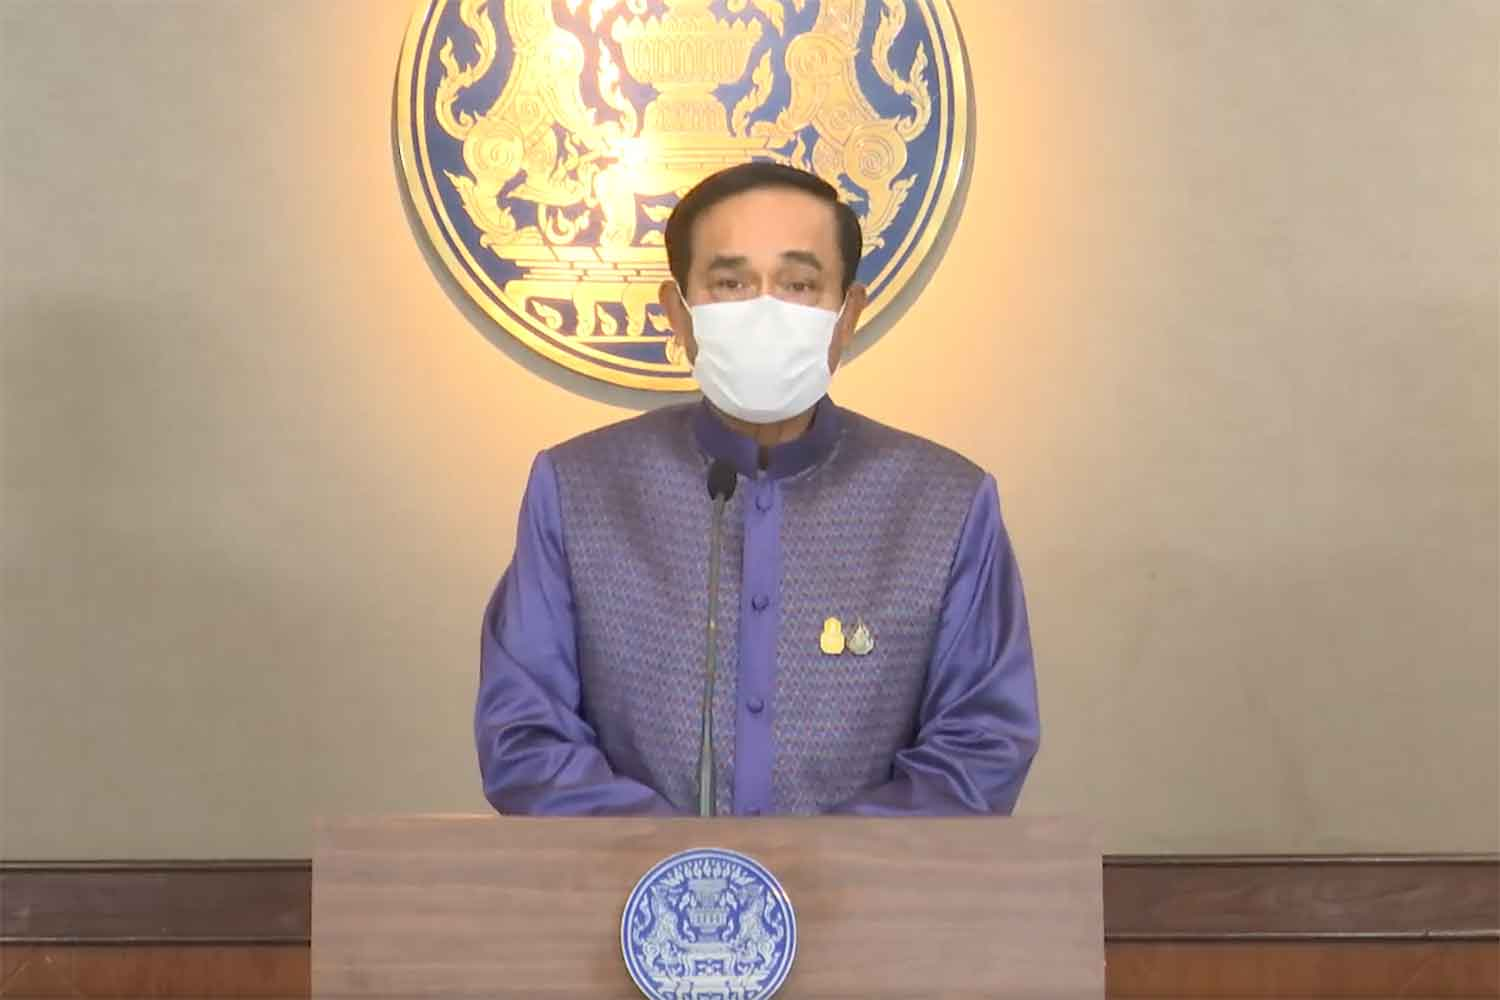 Prime Minister Prayut Chan-o-cha speaks to reporters at Government House in Bangkok on Tuesday. (Screenshot)